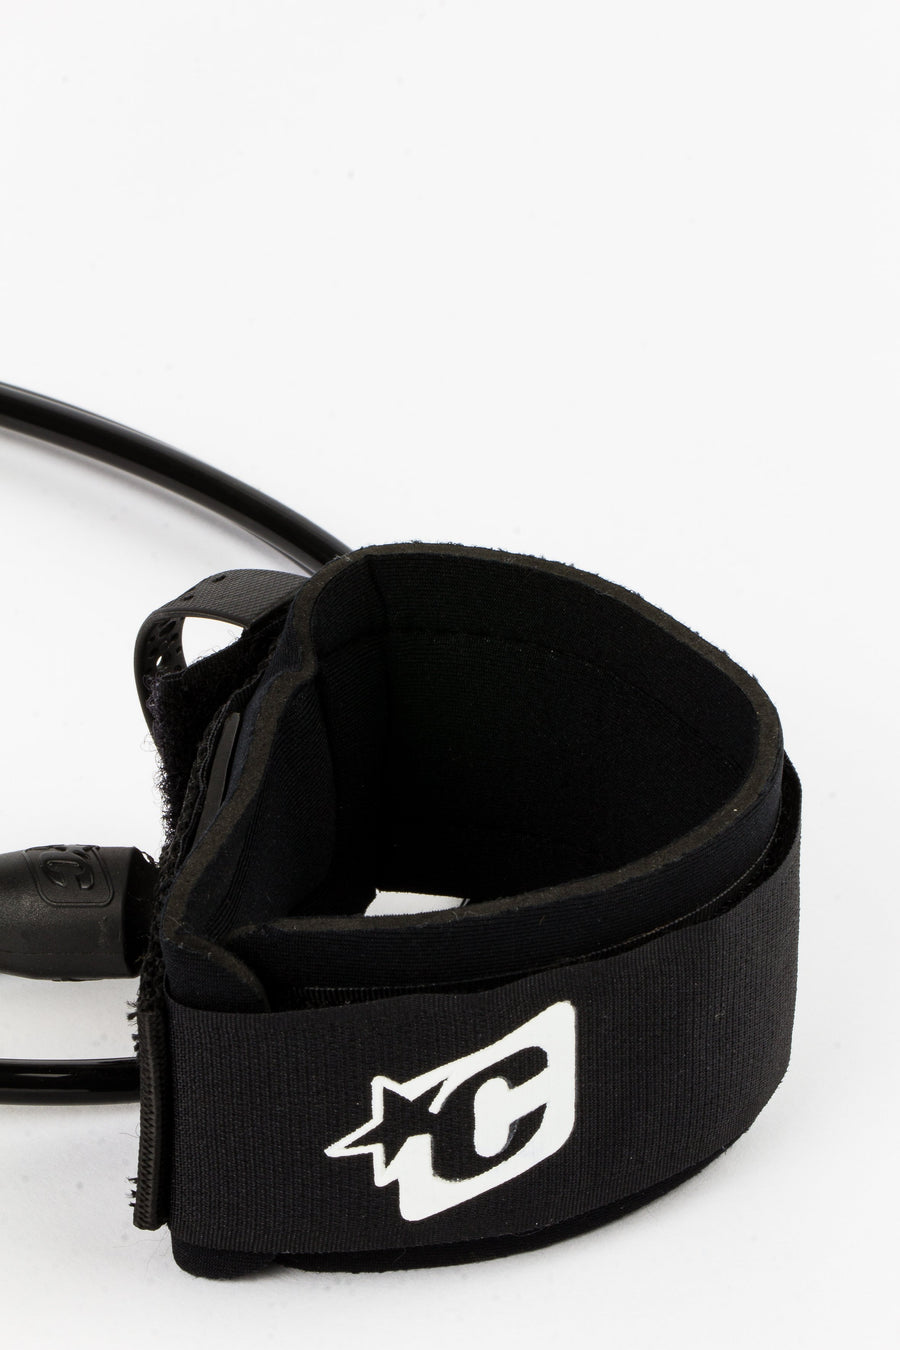 Backdoor 6 Leash